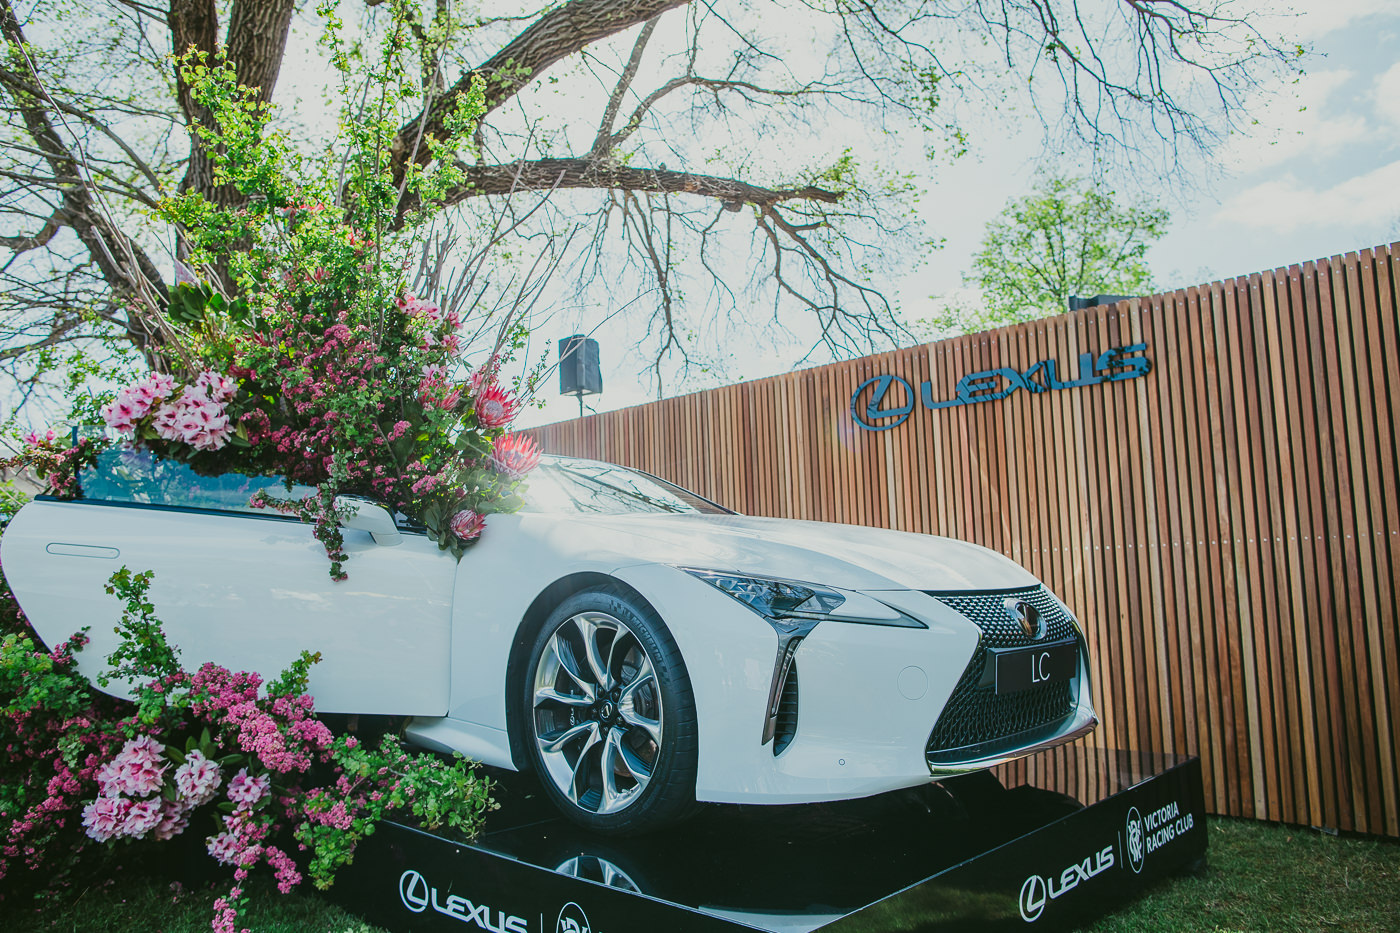 Lexus car - sponsor of the Melbourne Cup